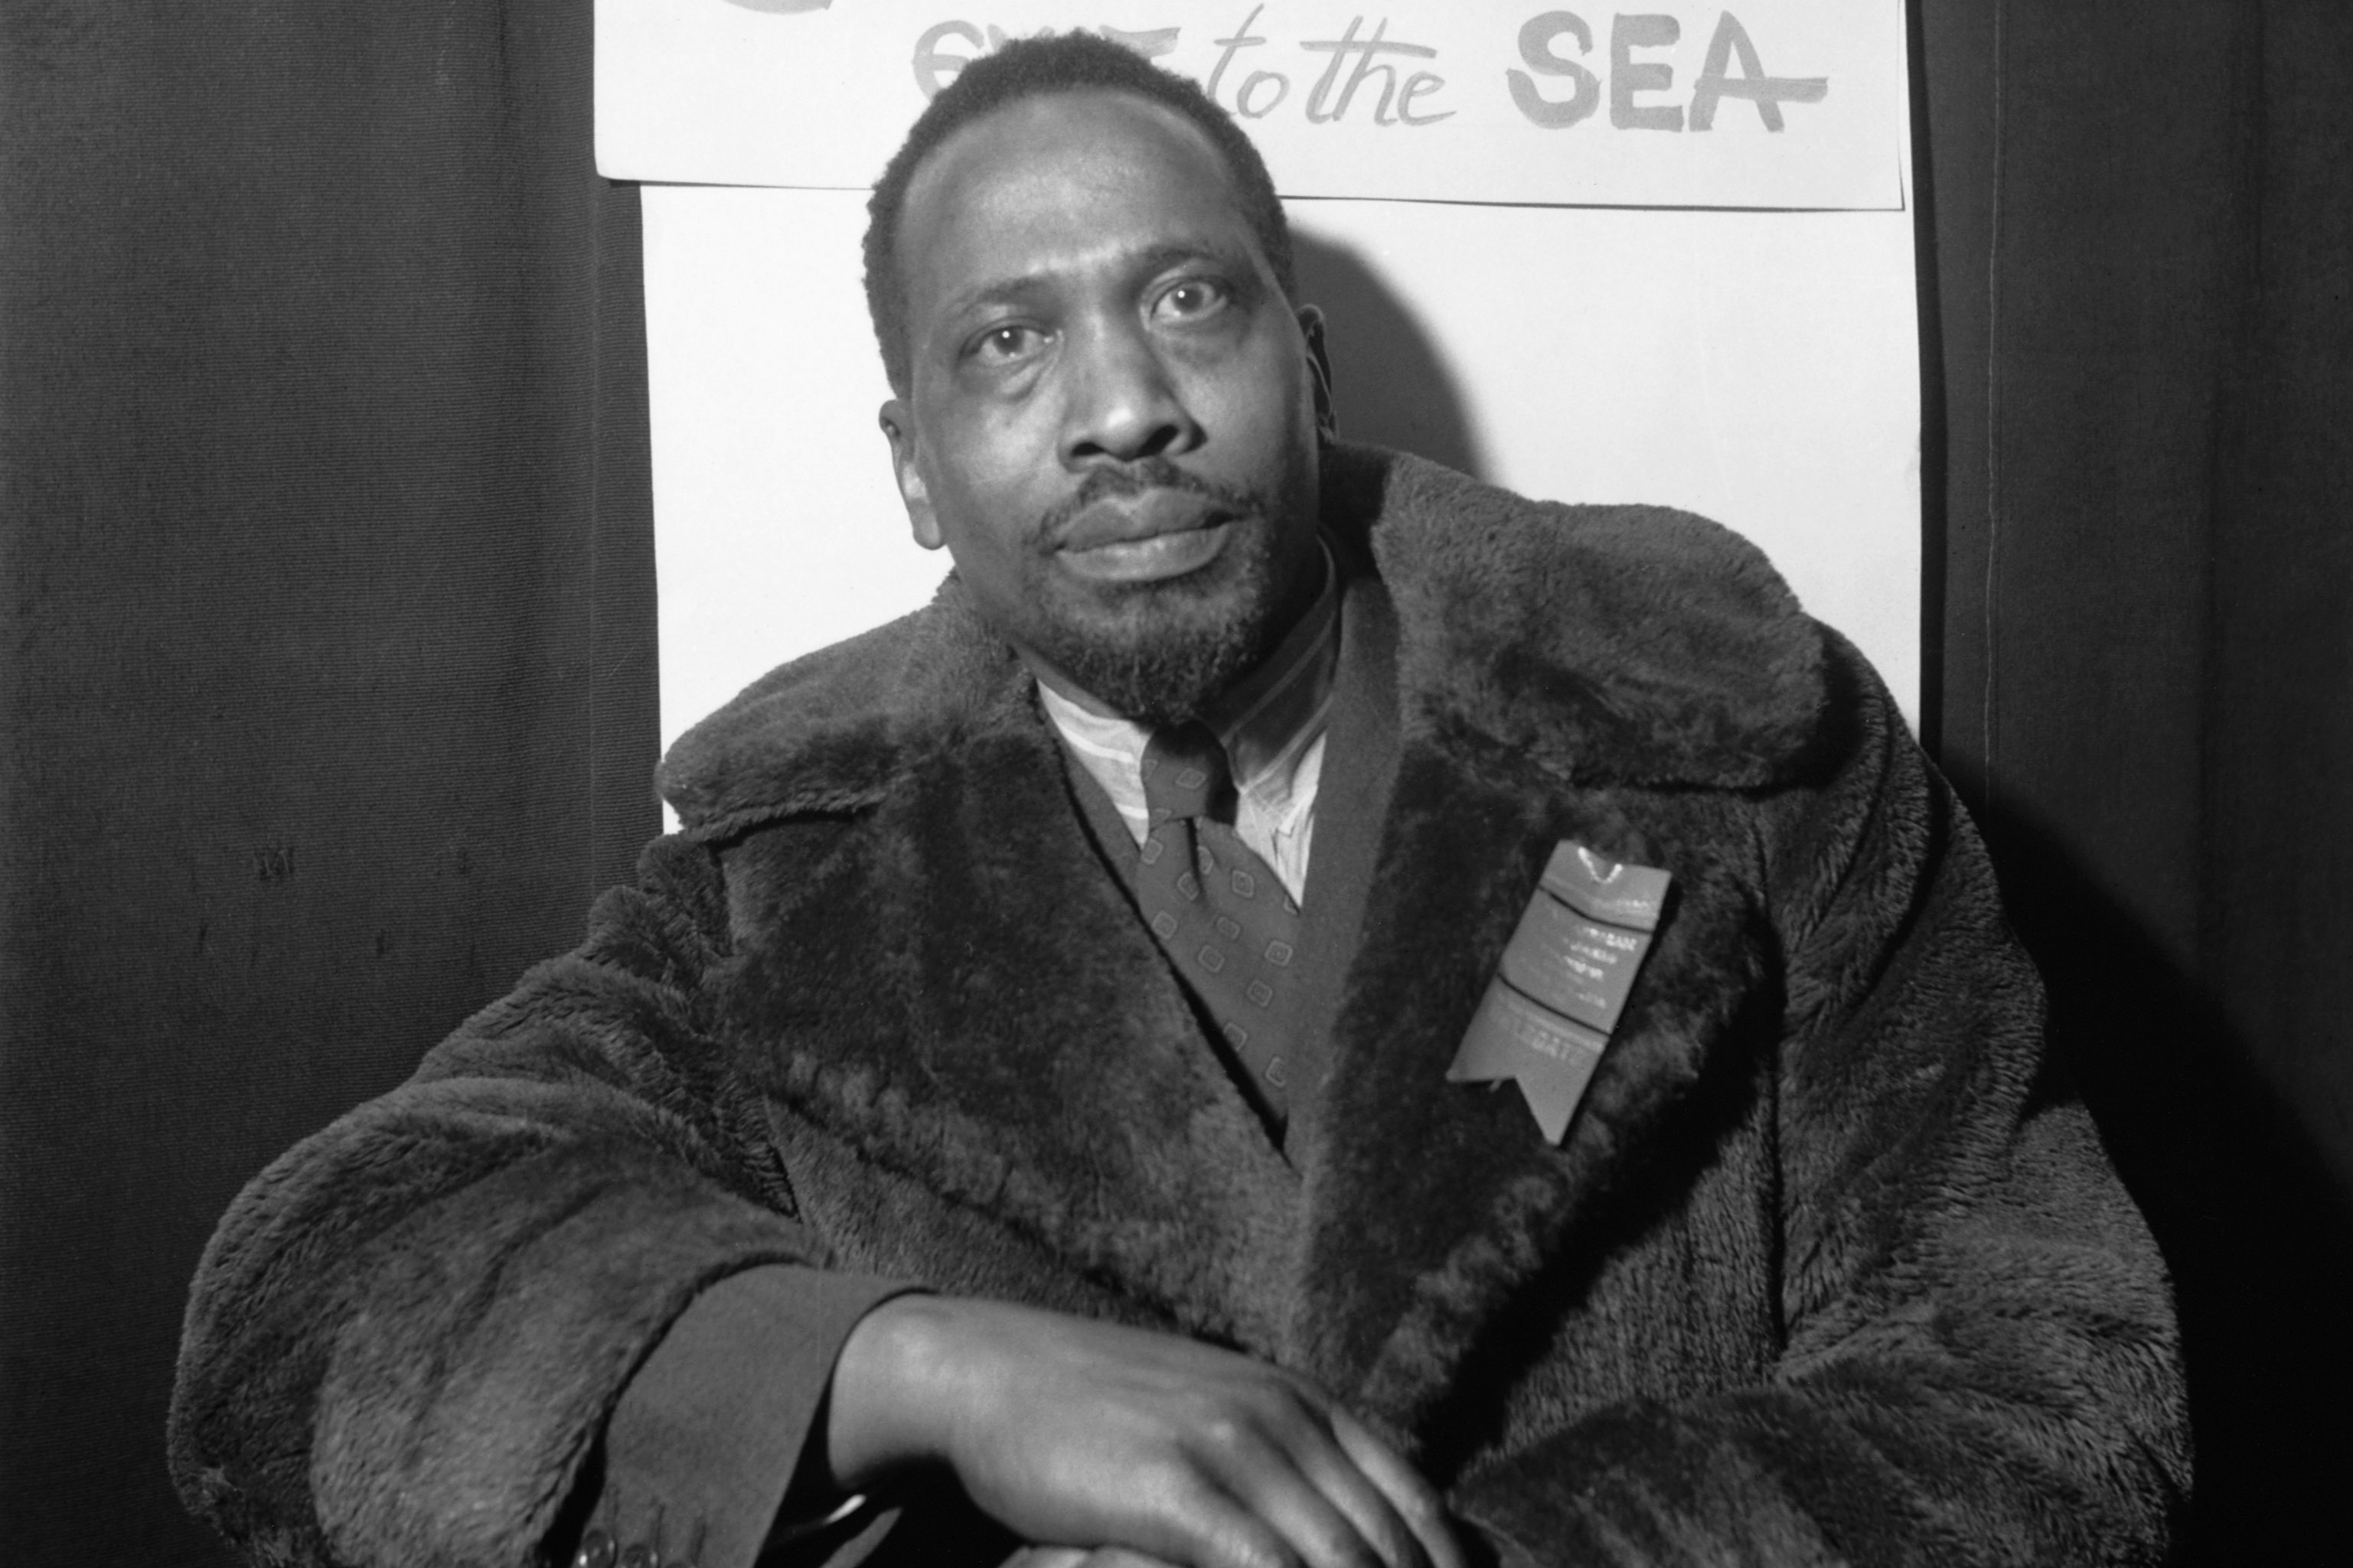 October 1945: Kenyan politician and later the first president of the Republic of Kenya Jomo Kenyatta at the Pan-African Congress in Manchester, England. (Photograph by © Hulton-Deutsch Collection/Corbis via Getty Images)